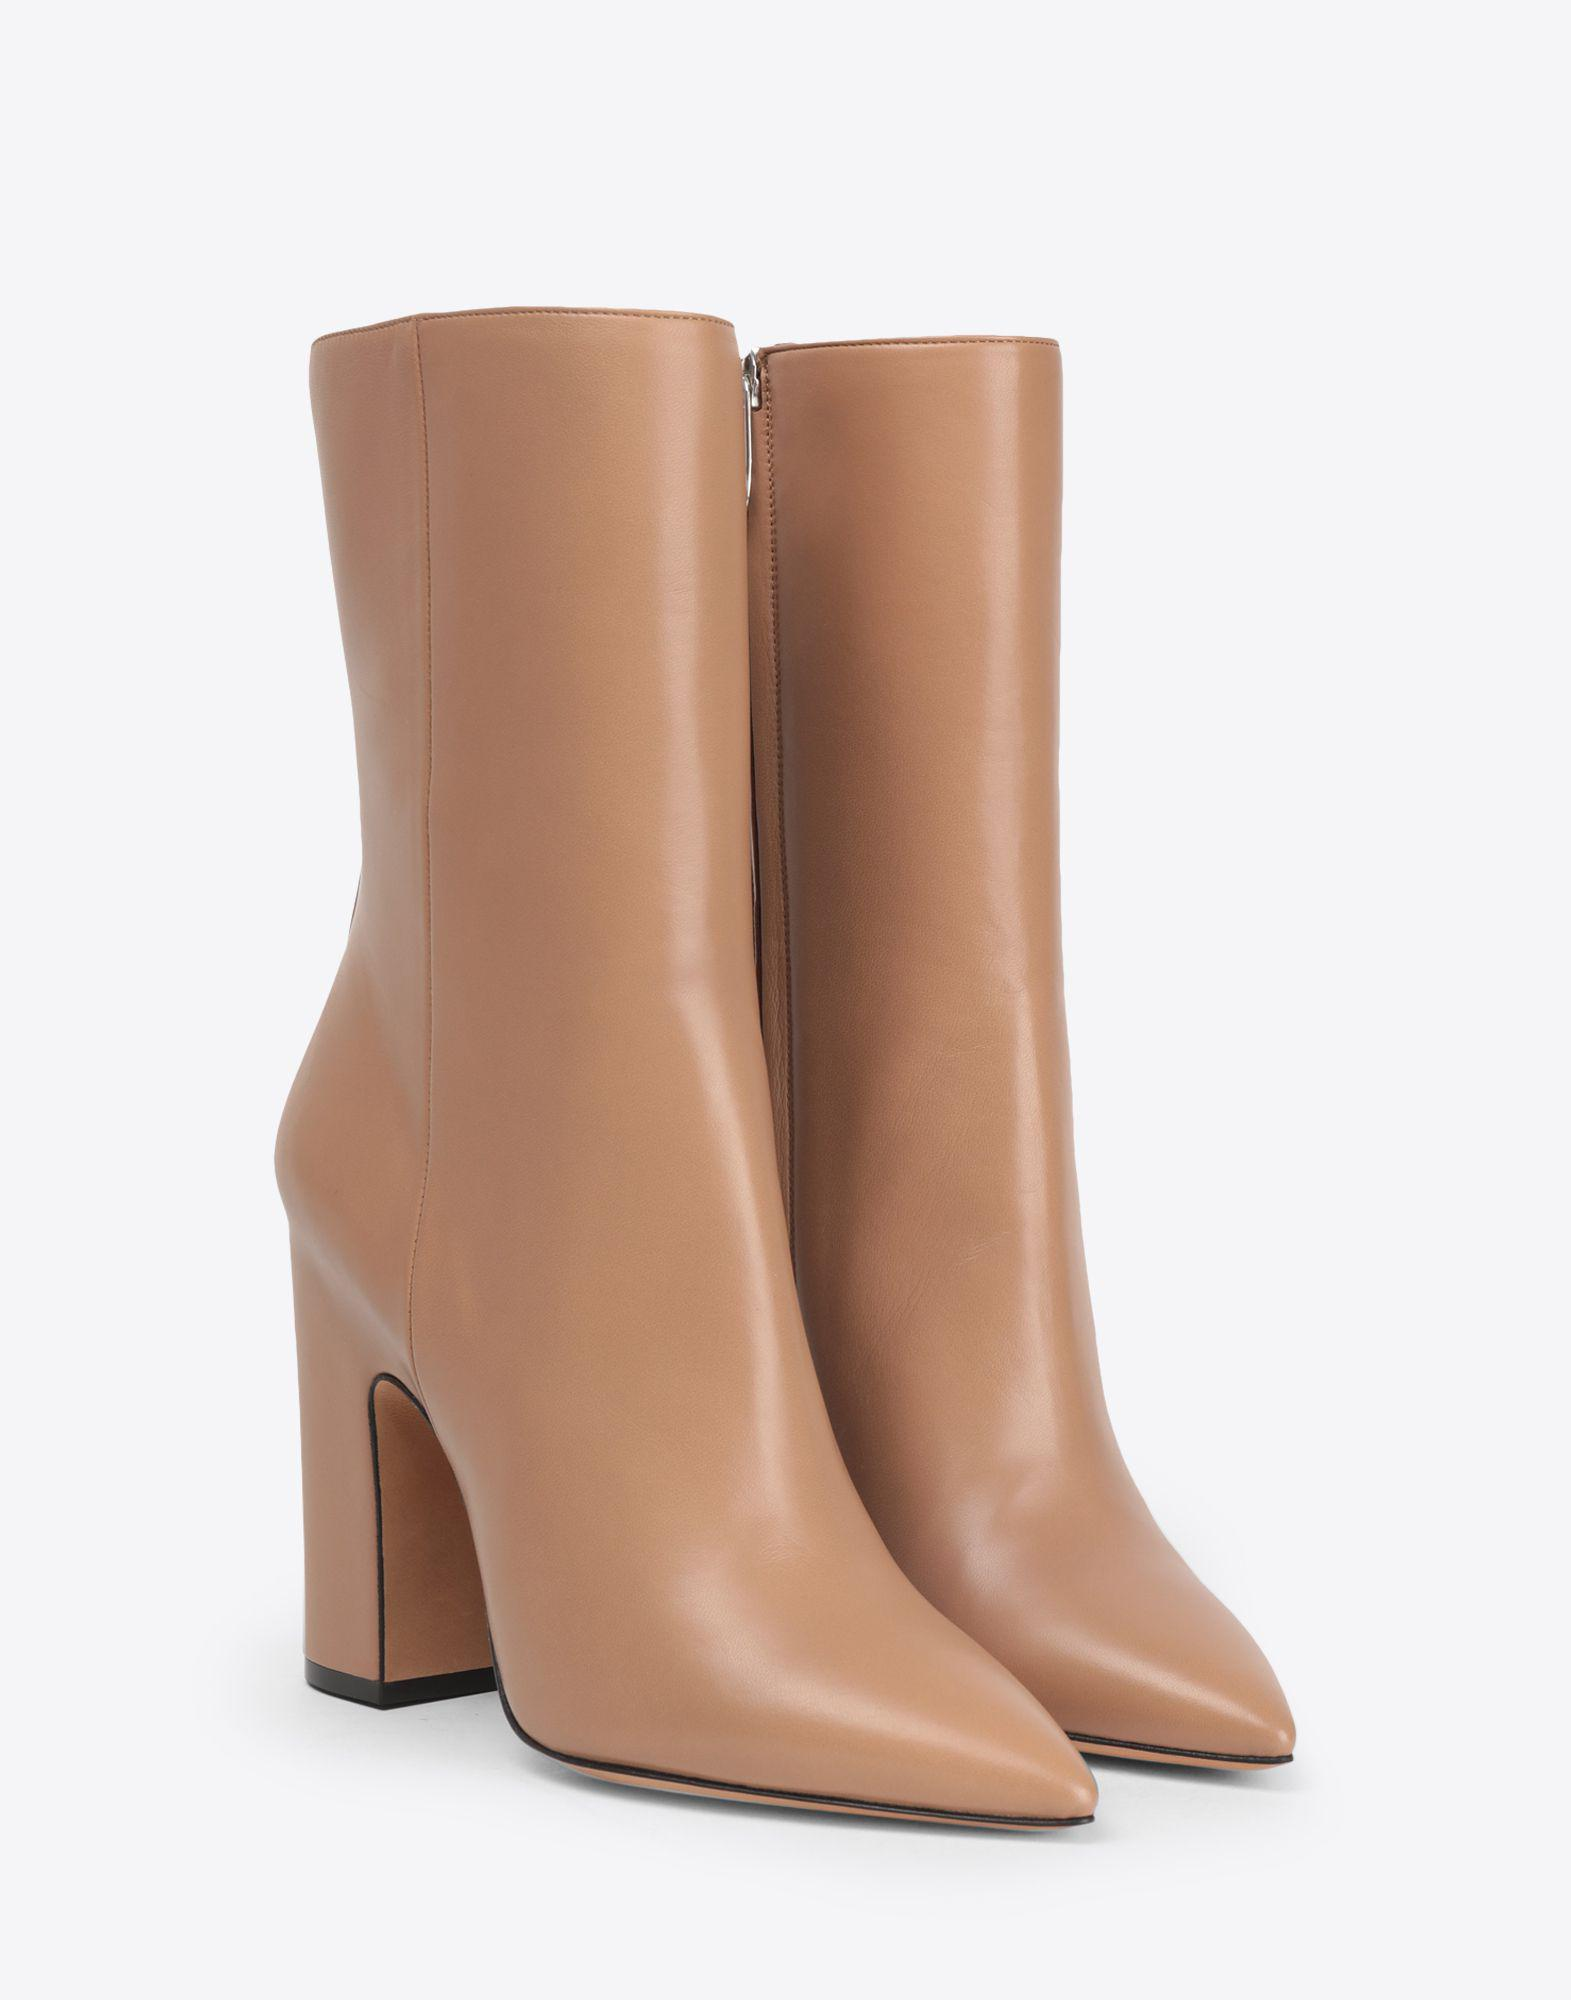 749a4b55dfa Lyst - Maison Margiela High Leather Ankle Boots in Natural